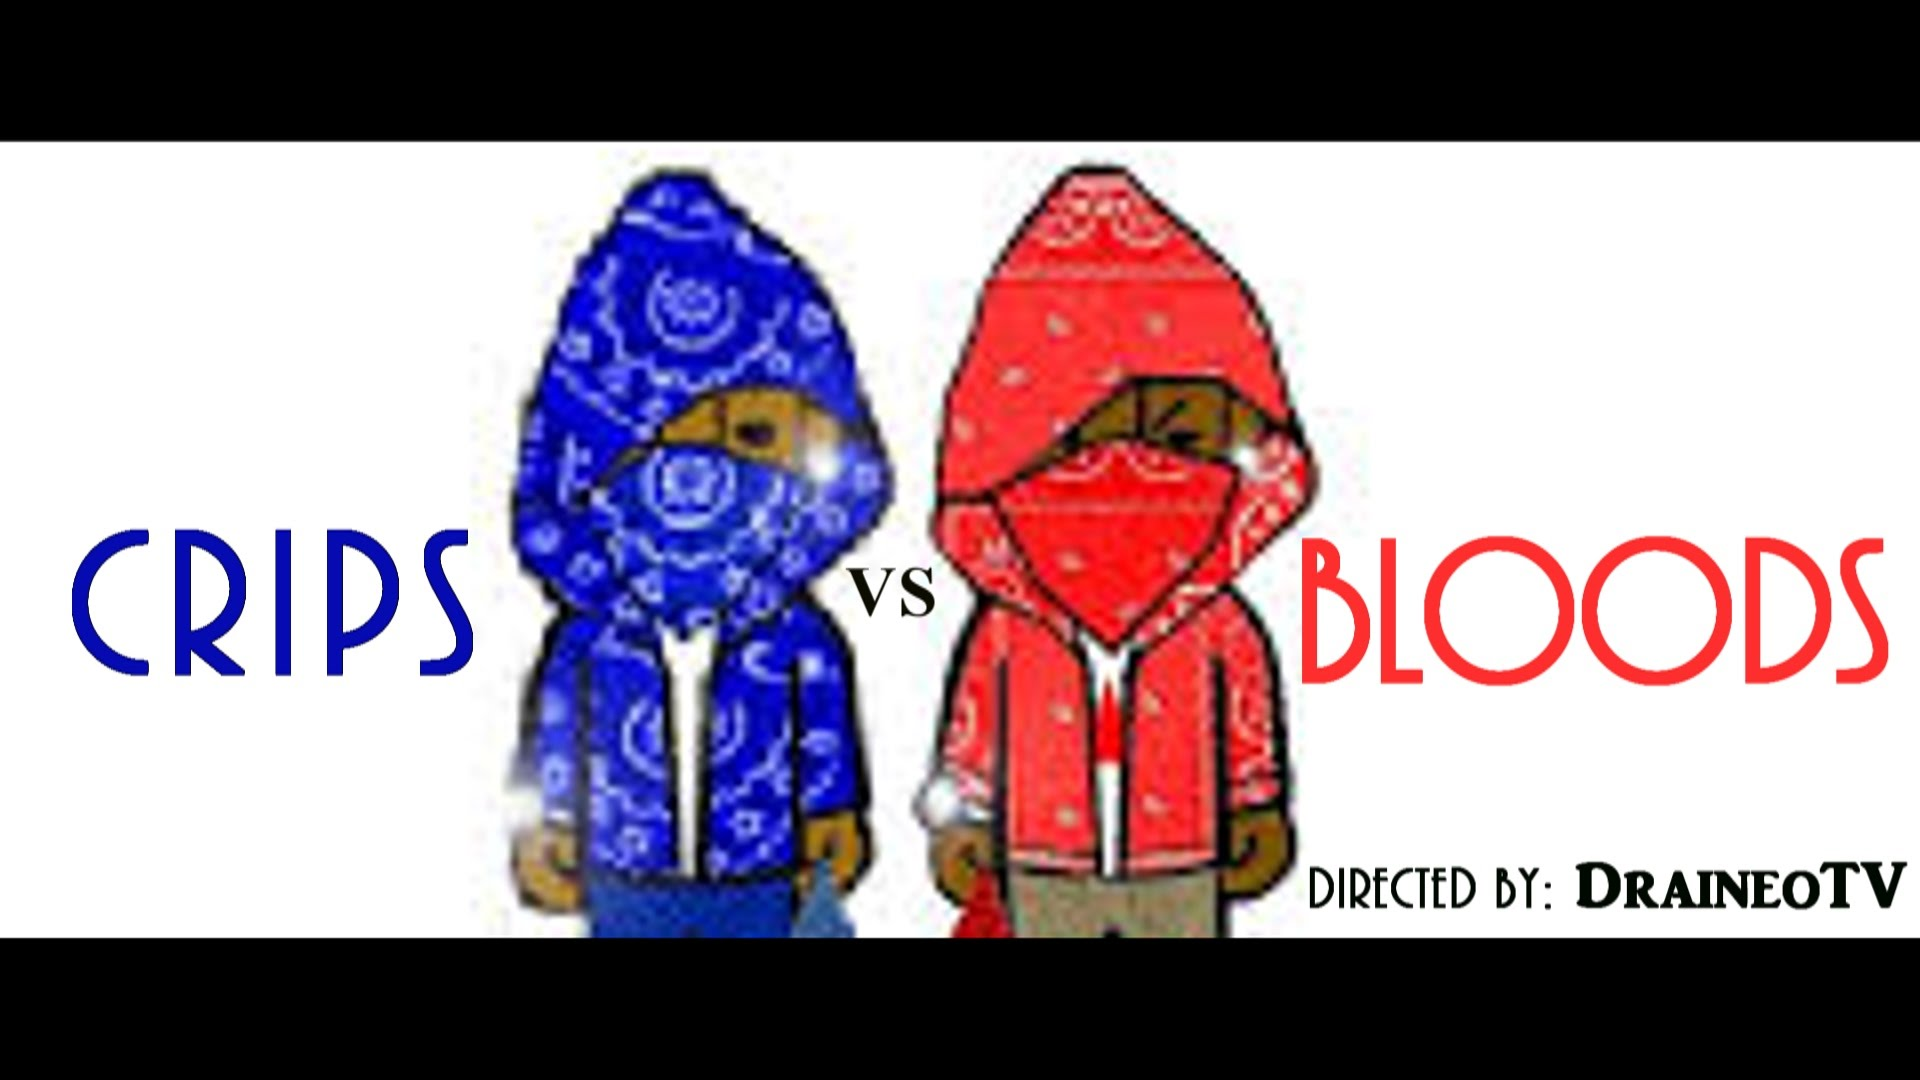 Android Girl Live Wallpaper Download Bloods Vs Crips Wallpaper Gallery